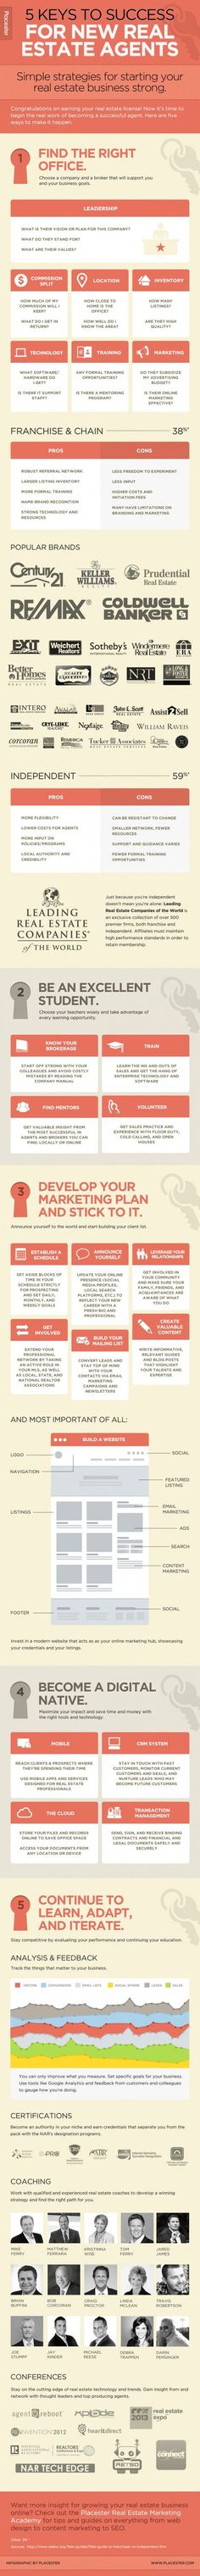 manuel cossio #business development #business planning Real - real estate business plan template